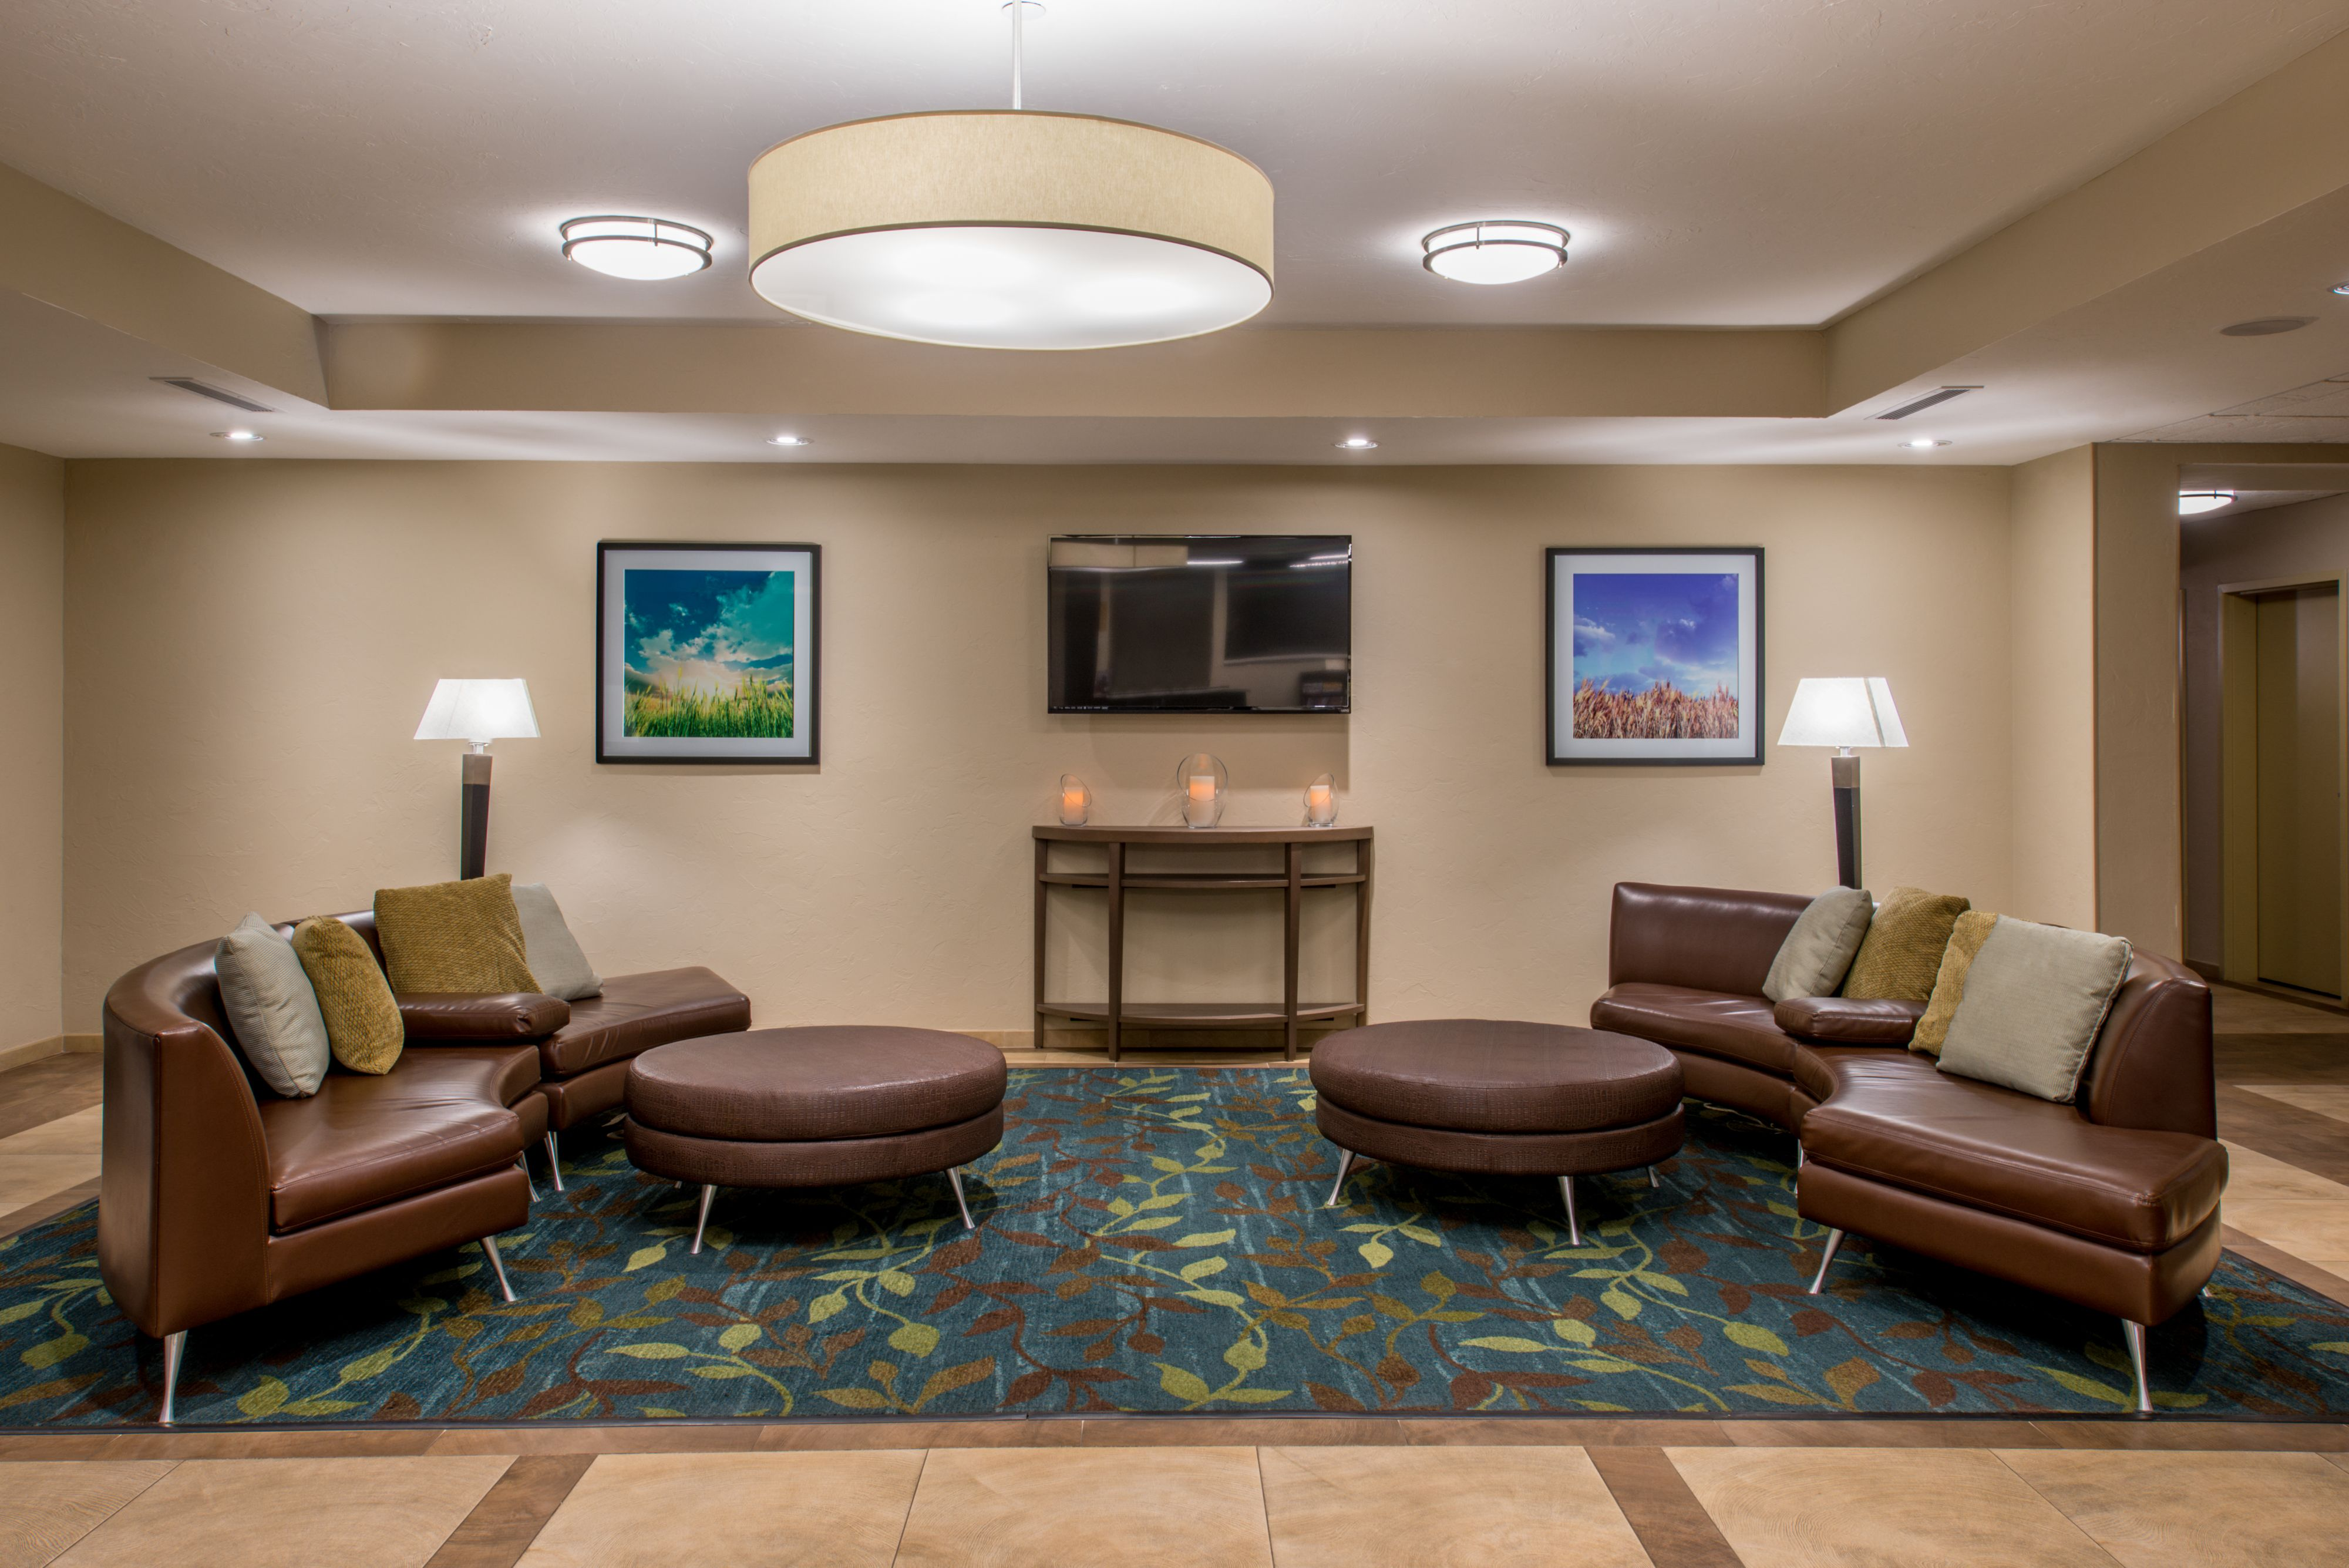 Candlewood Suites Midwest City image 5